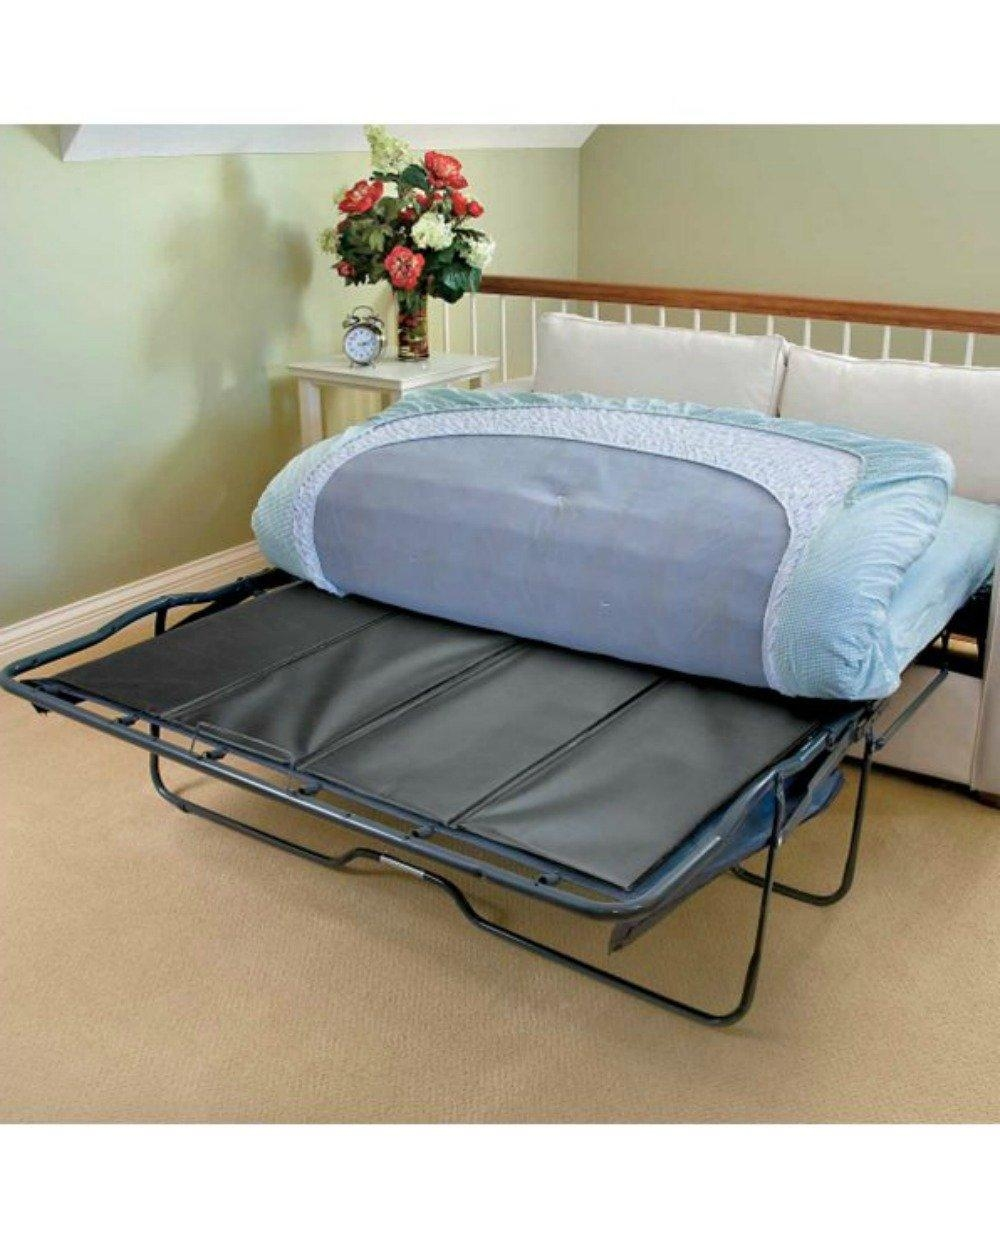 Unique Sofa Bed Mattress Support Board 31 In Willow And Hall Sofa intended for Sofa Beds With Support Boards